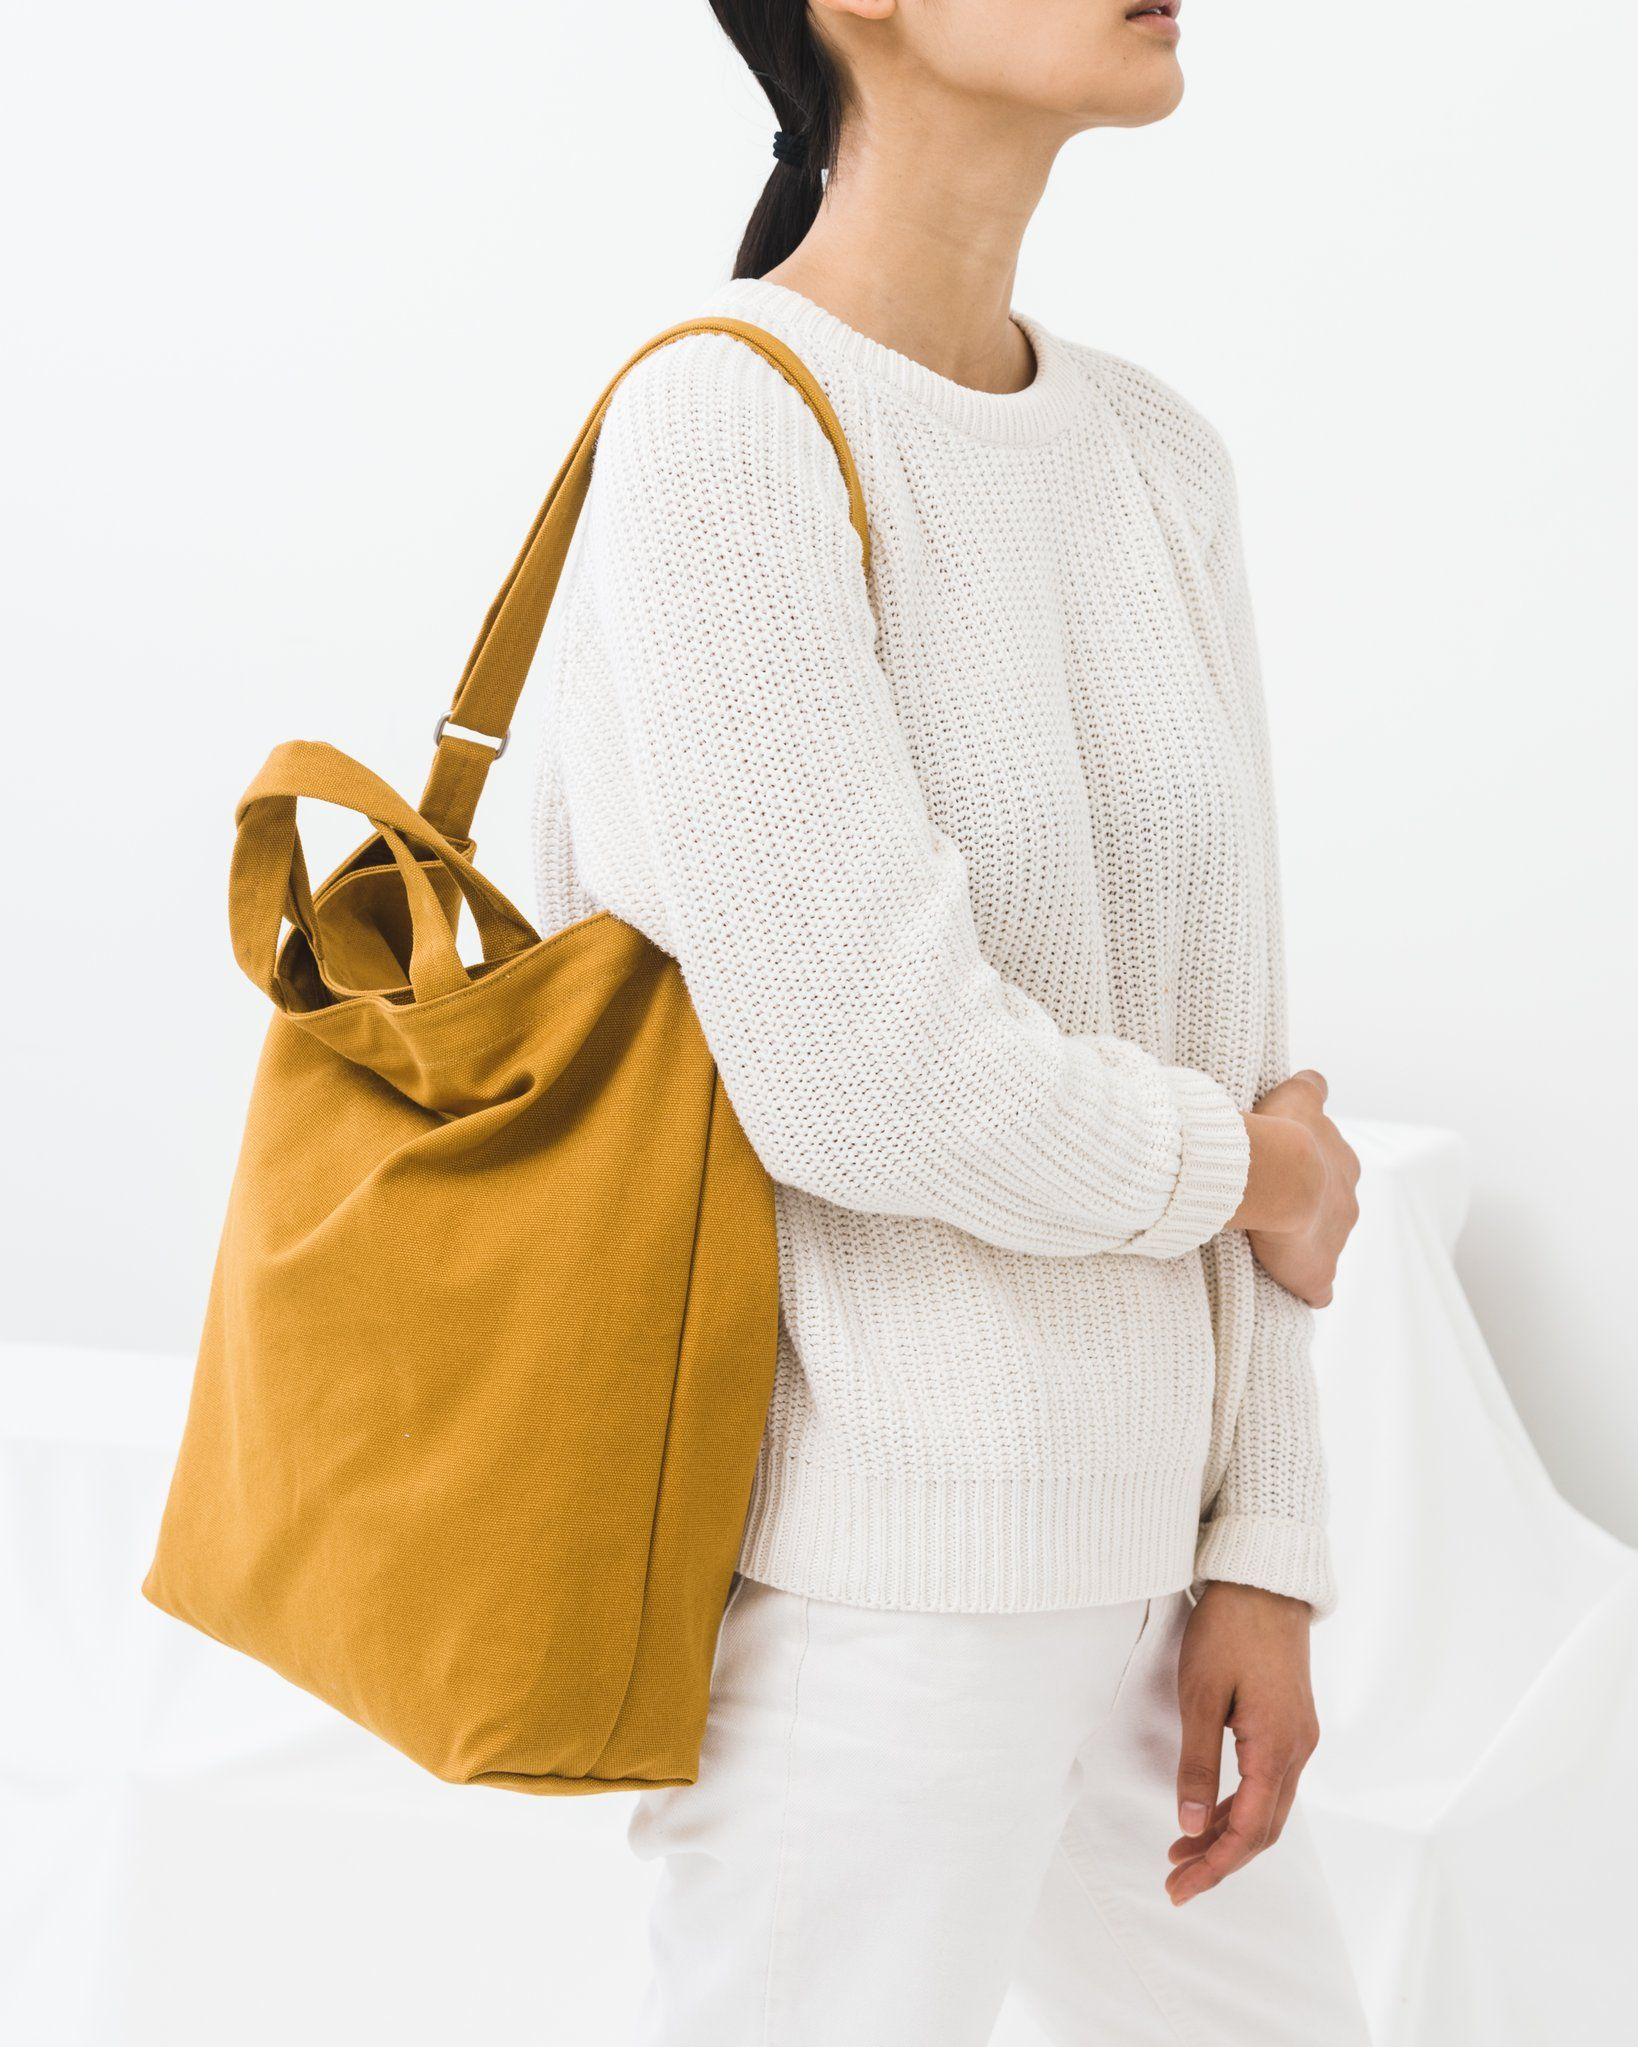 cc89d707728c Baggu Duck Bag - Ochre | Fall Wish List | Bags, Purses, bags ...